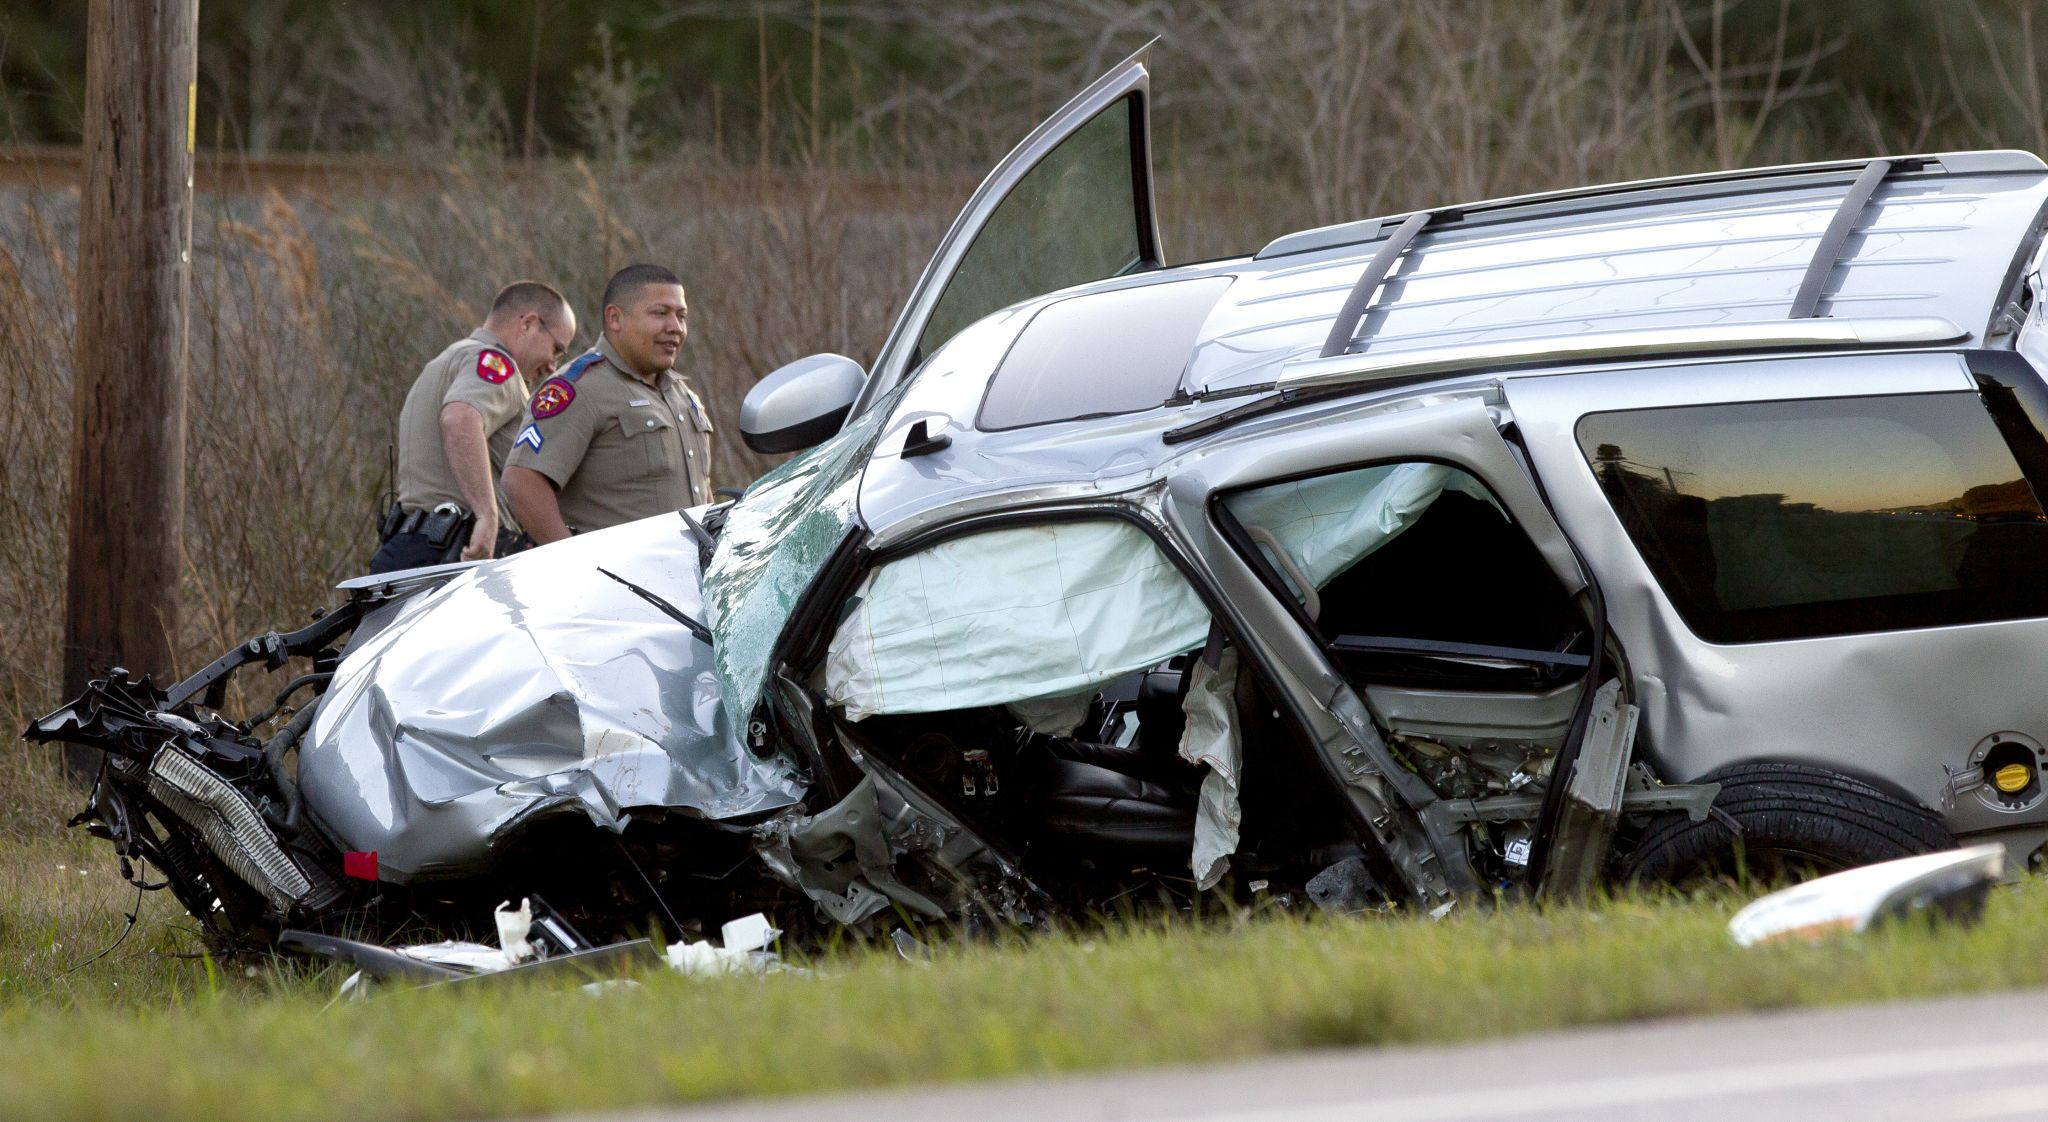 One dead in fiery crash near Montgomery - The Courier